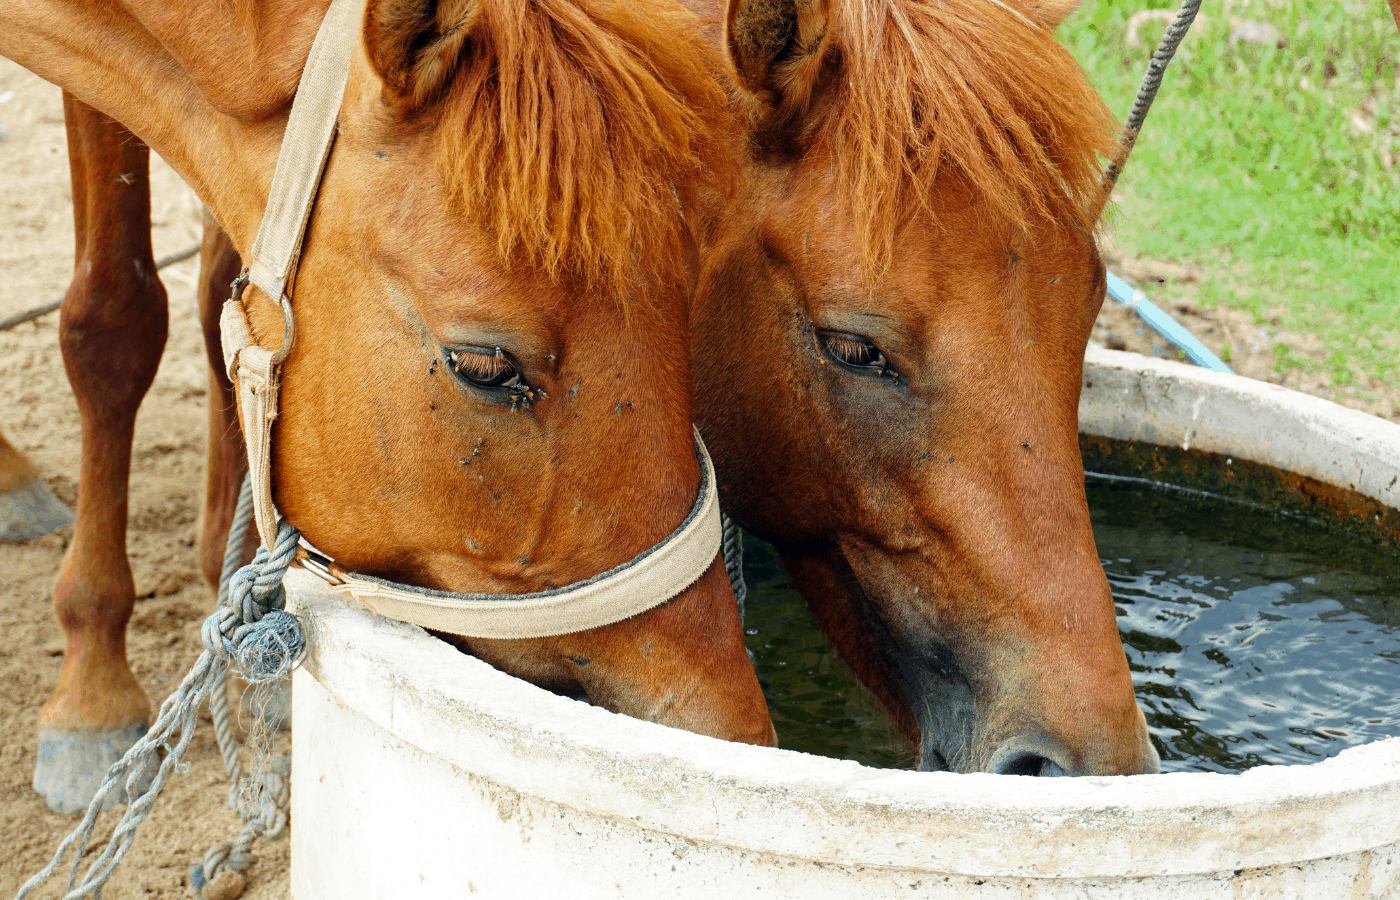 is rainwater safe for horses to drink